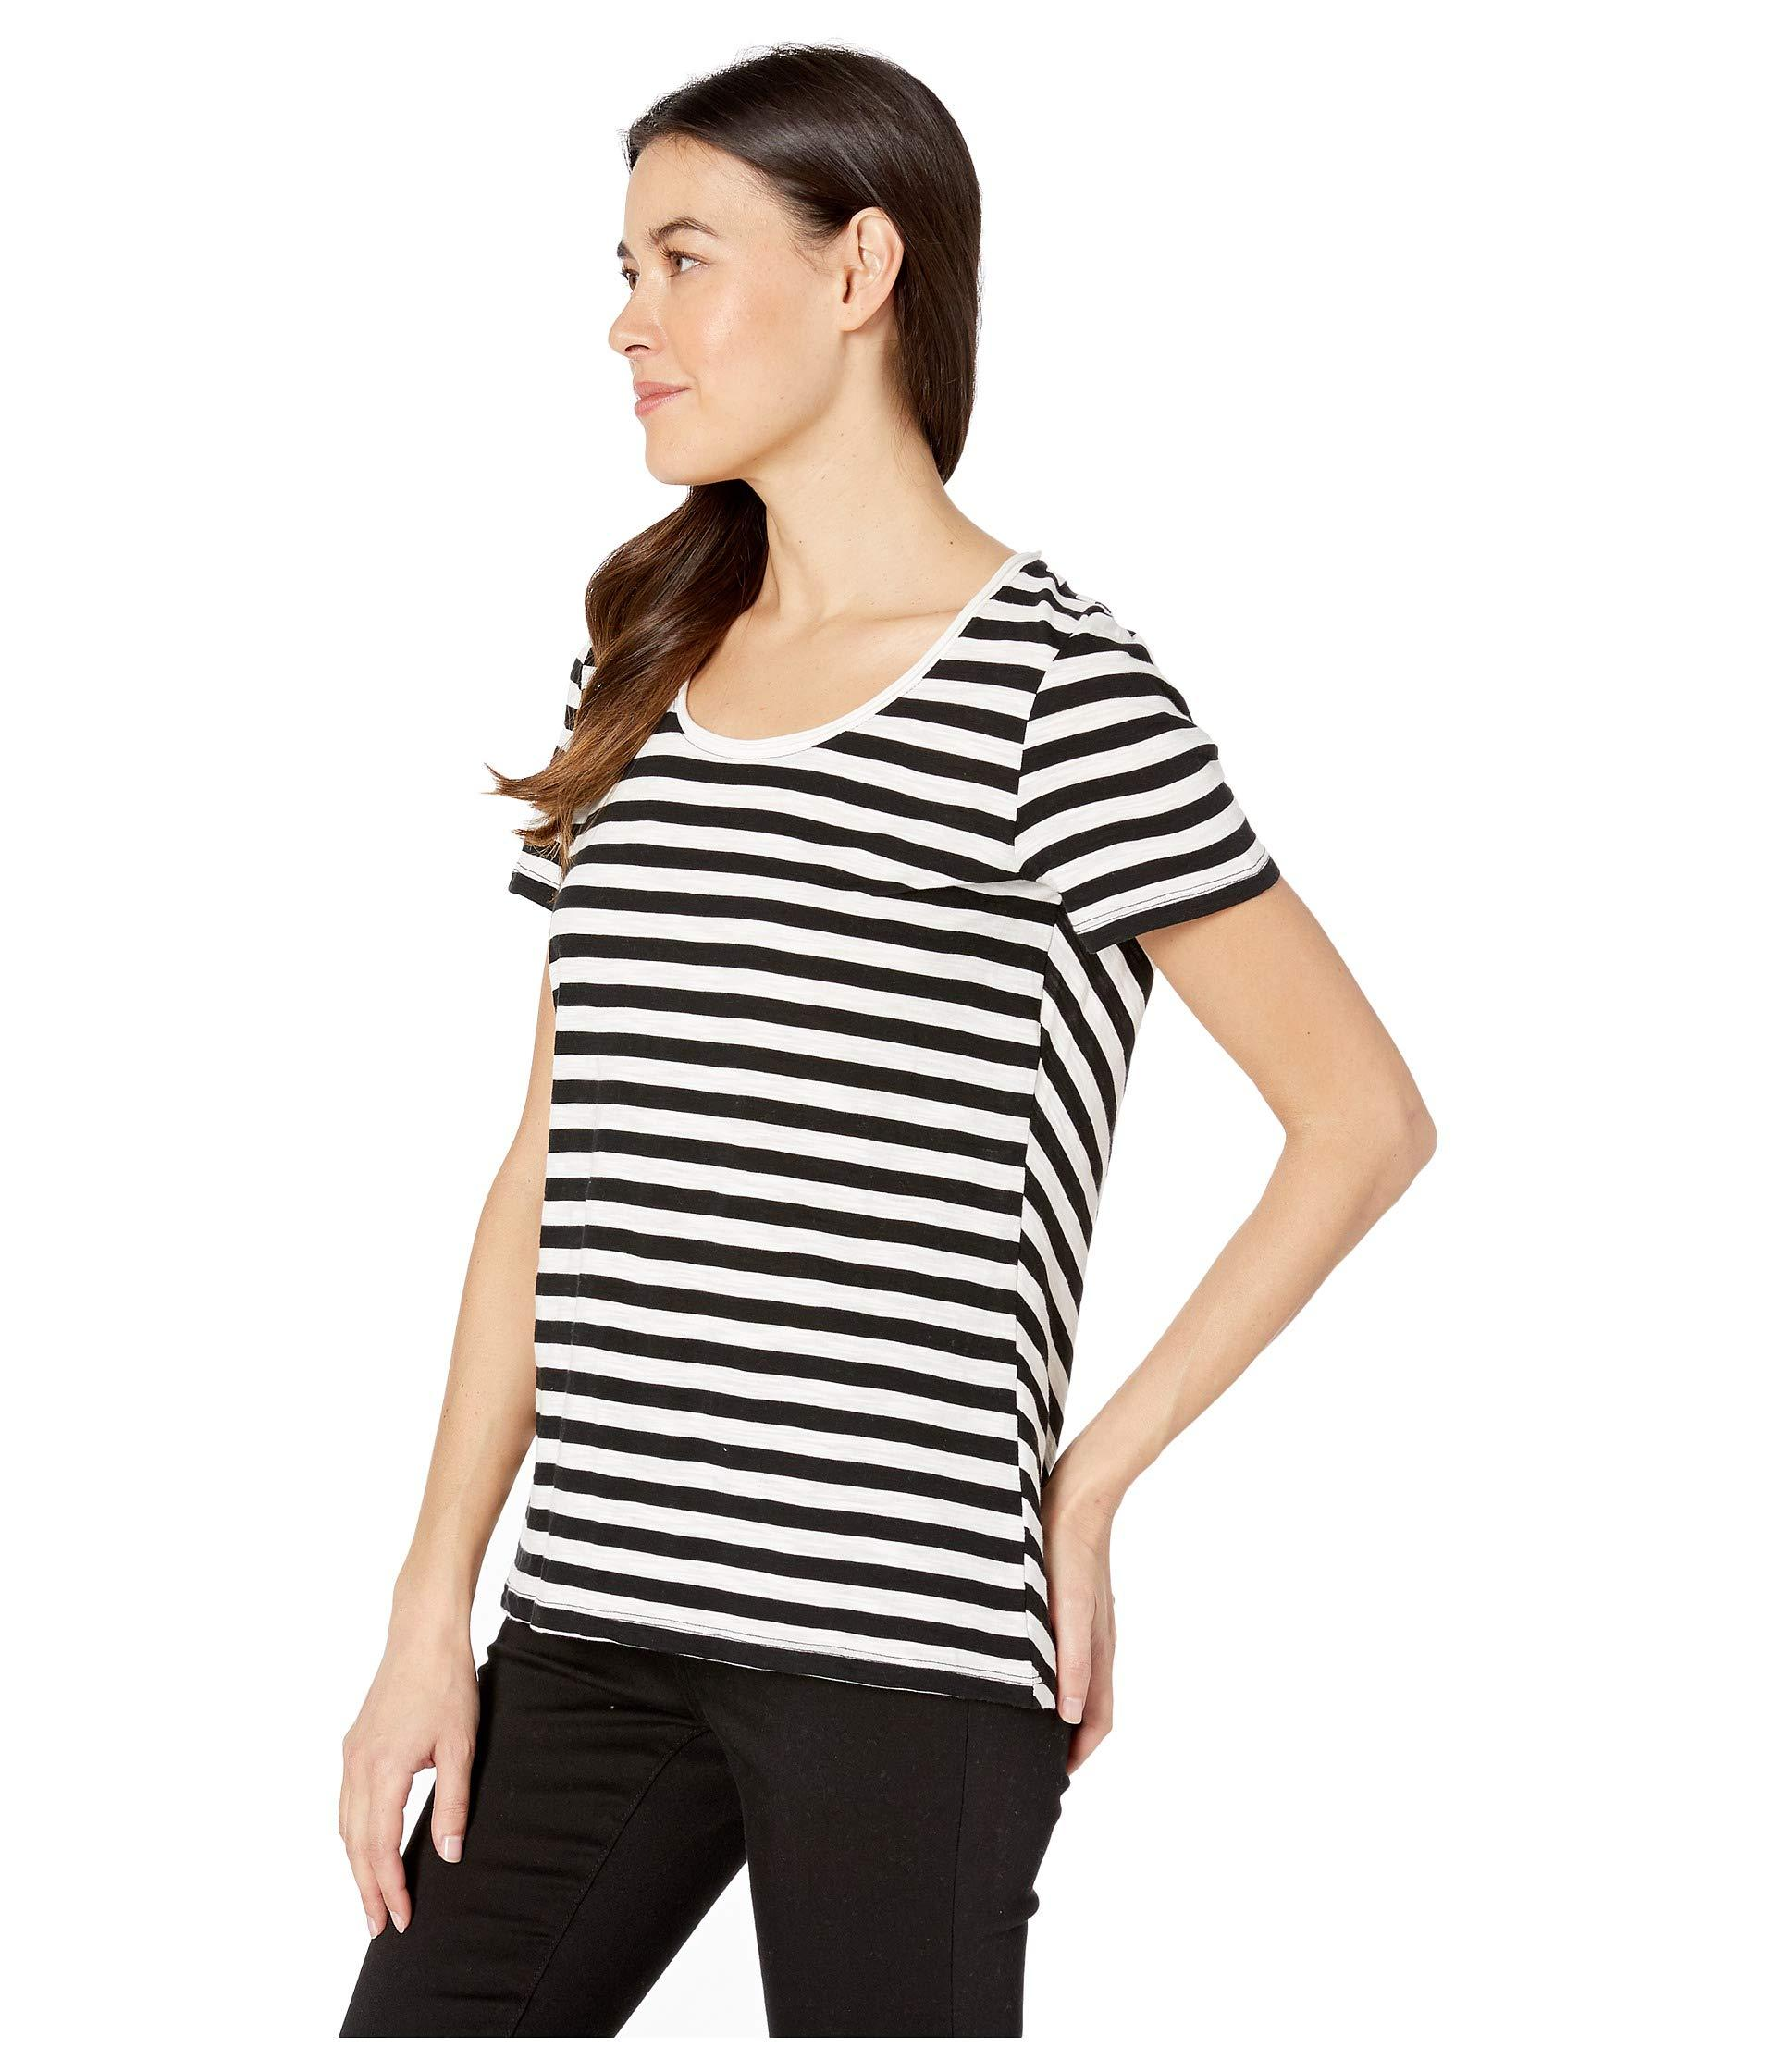 ab50a8f252 Lyst - Two By Vince Camuto Short Sleeve Amour City Stripe Scoop Neck Tee  (rich Black) Women s T Shirt in Black